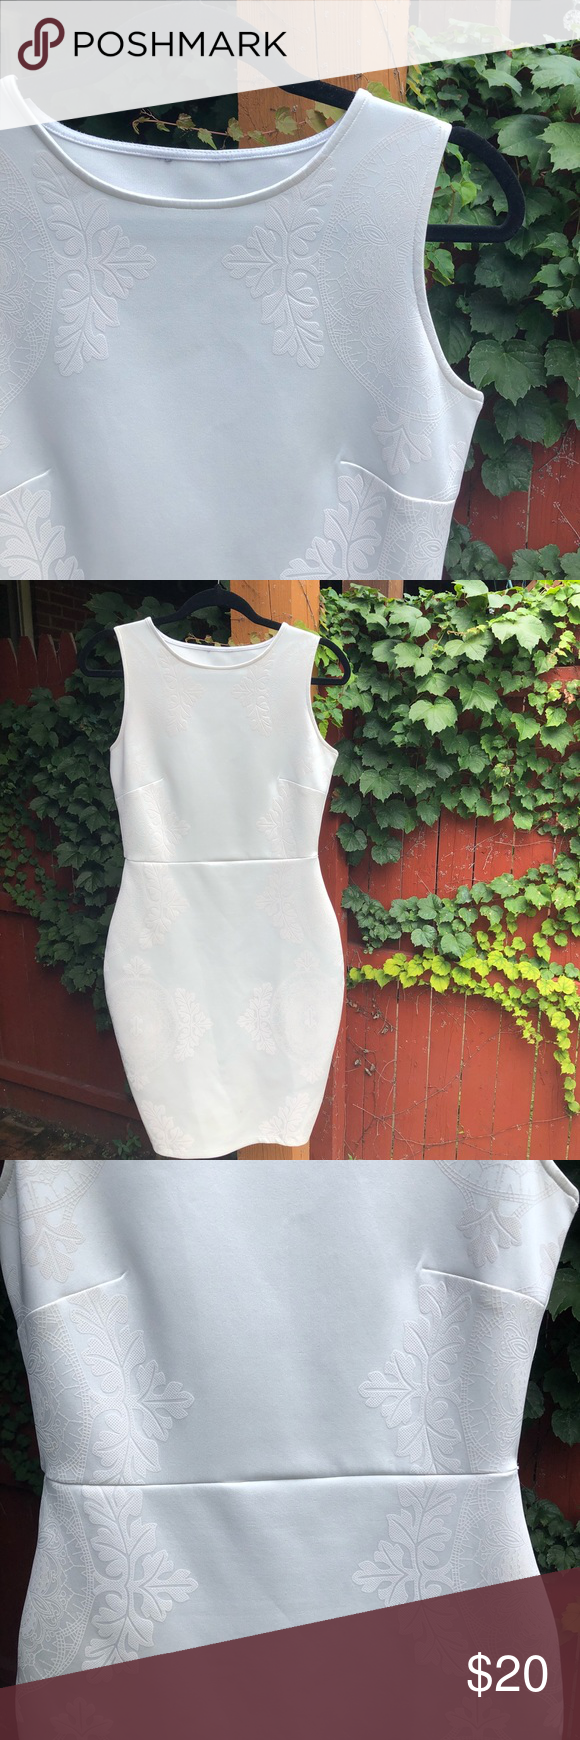 White Stretchy Dress White Dress Made Of Stretchy Material Says European Size 38 And Us 10 But I Would Say Fits A Stretchy Dress Clothes Design A Line Dress [ 1740 x 580 Pixel ]